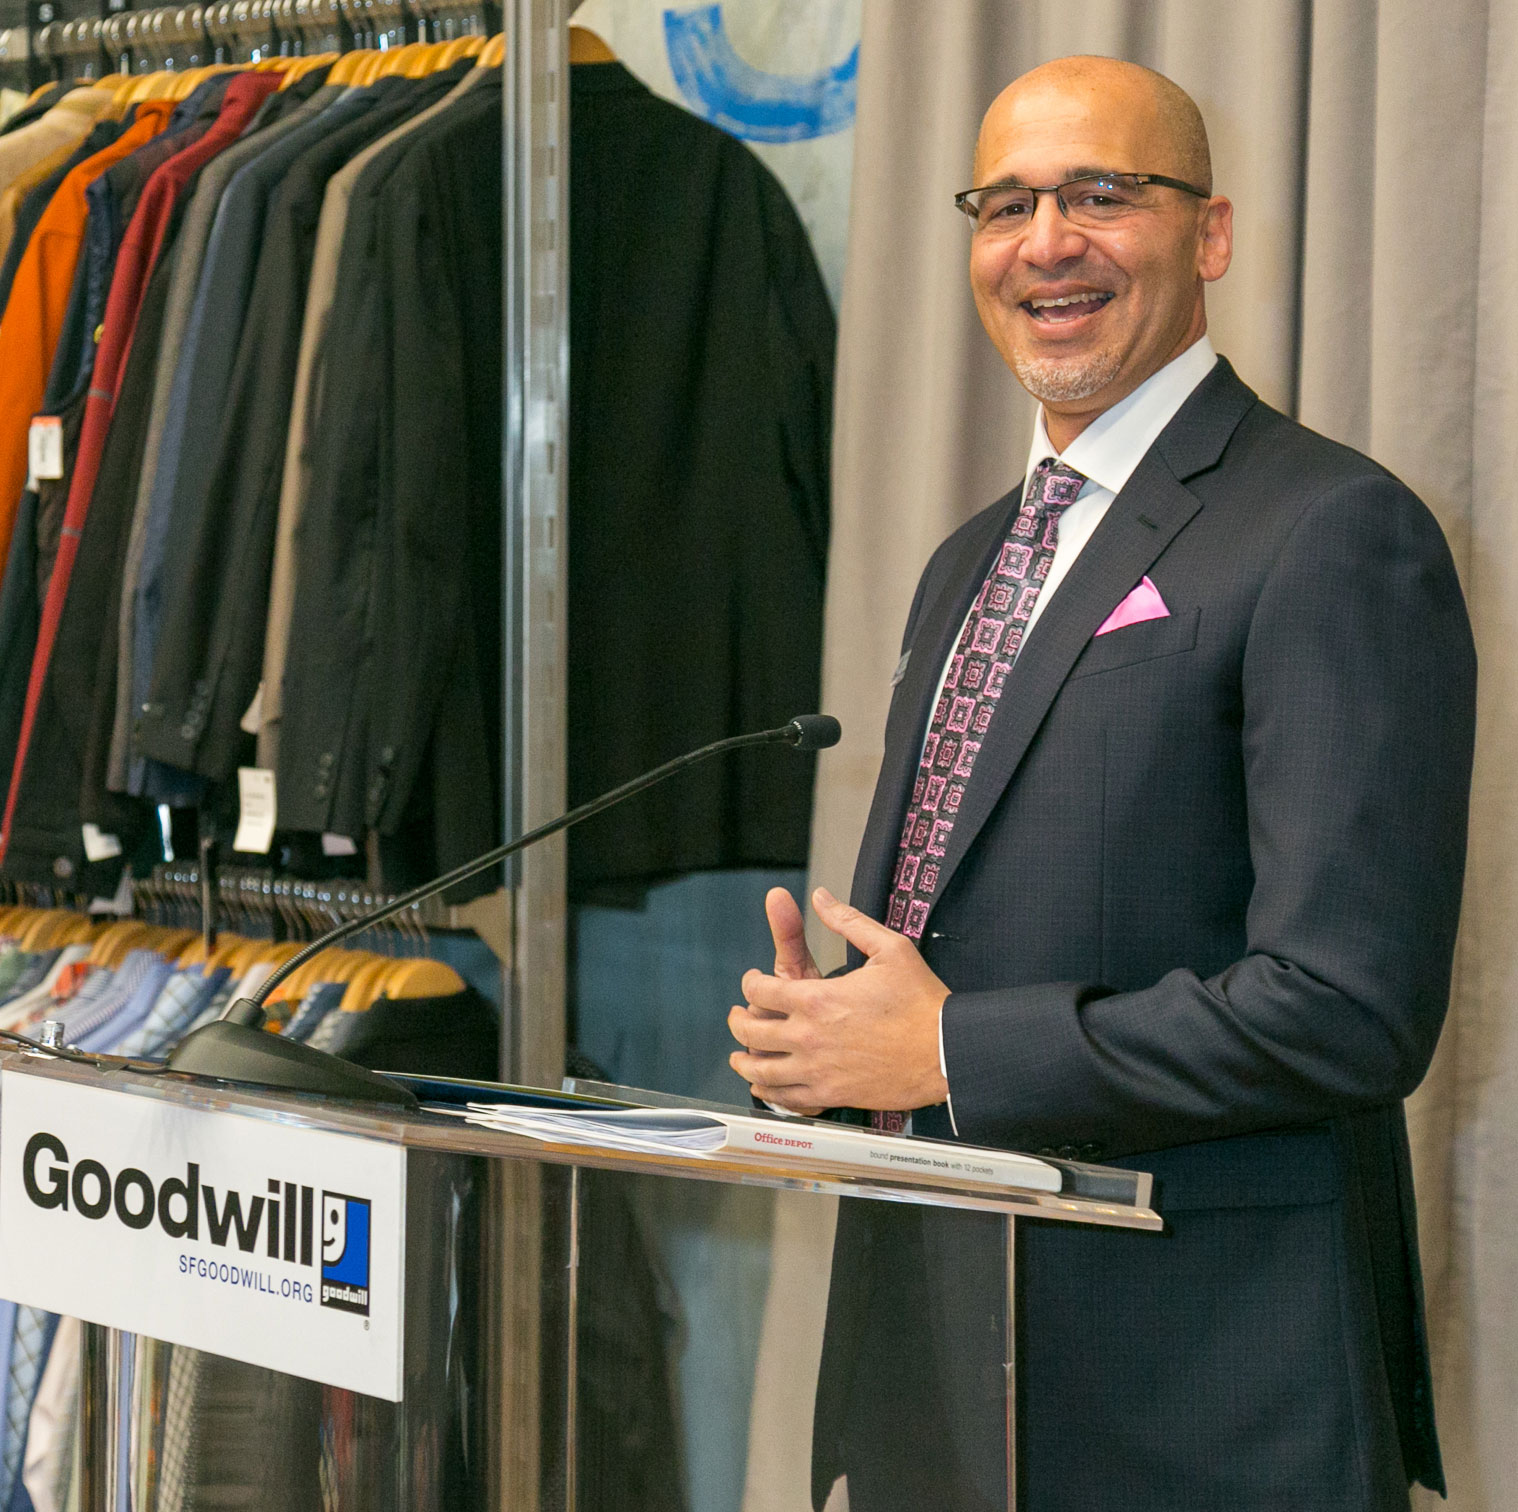 SF Goodwill CEO William Rogers